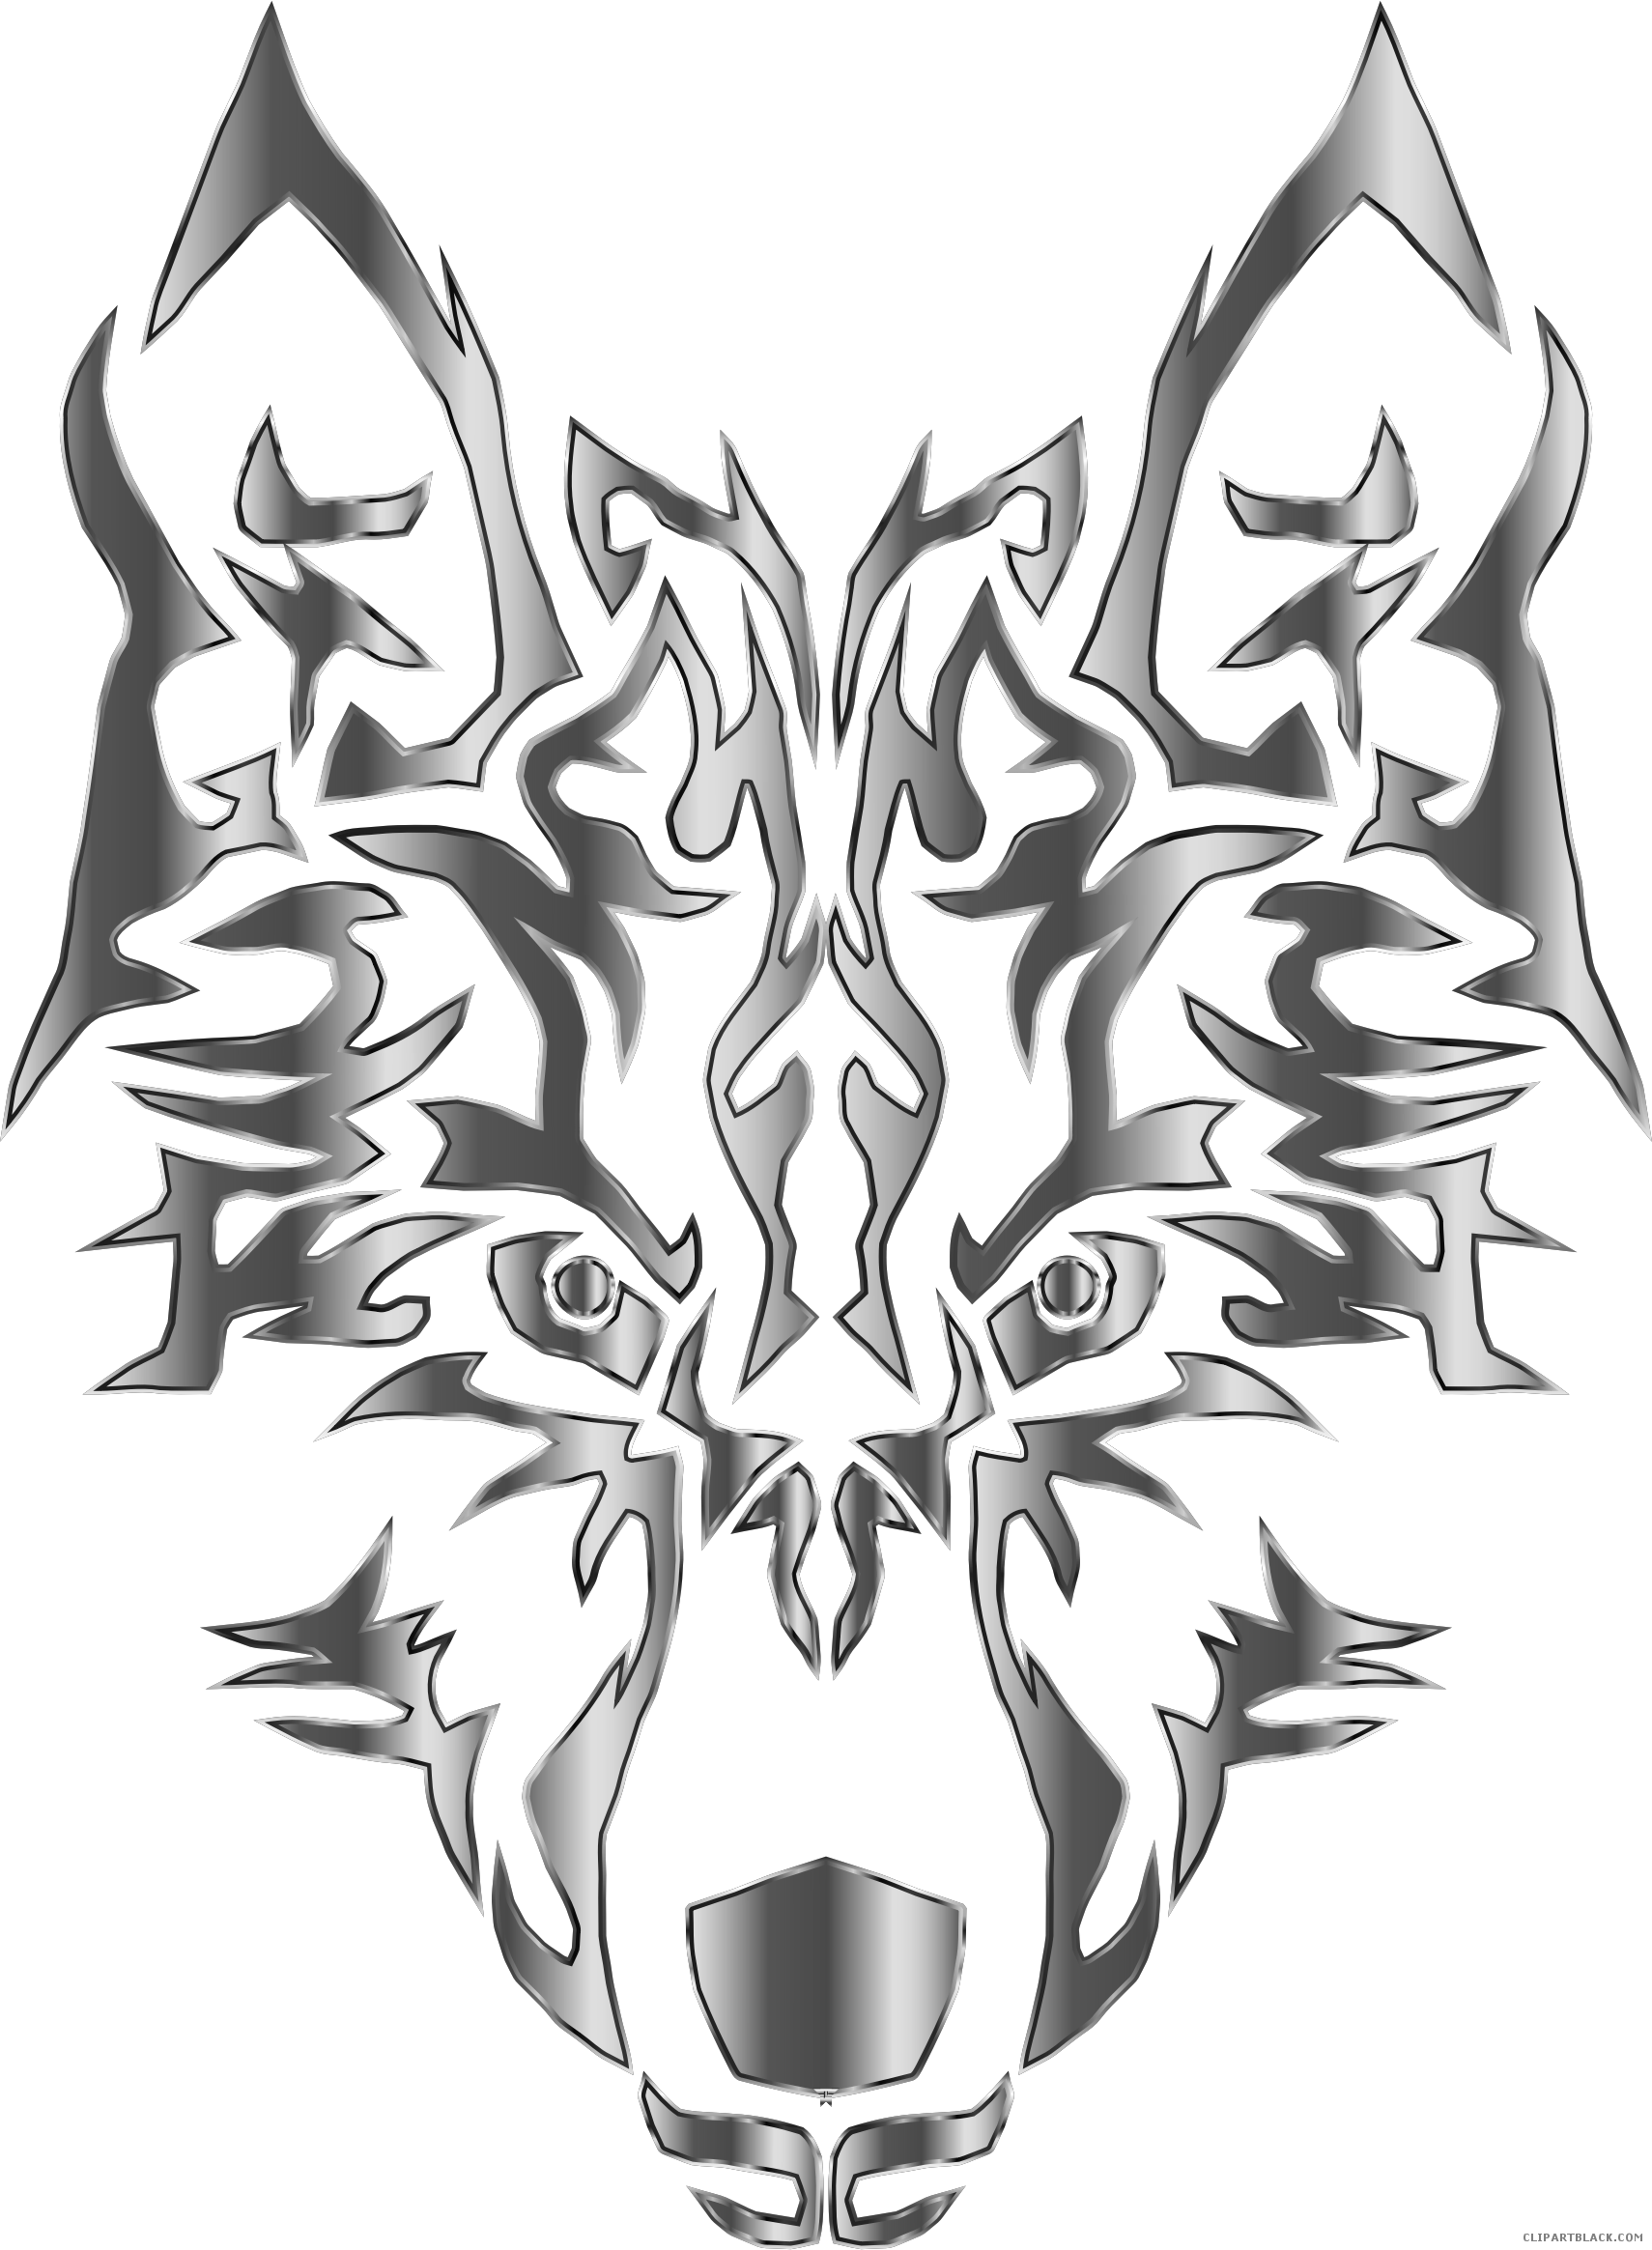 Hungry wolf clipartblack com. Wolves clipart black and white